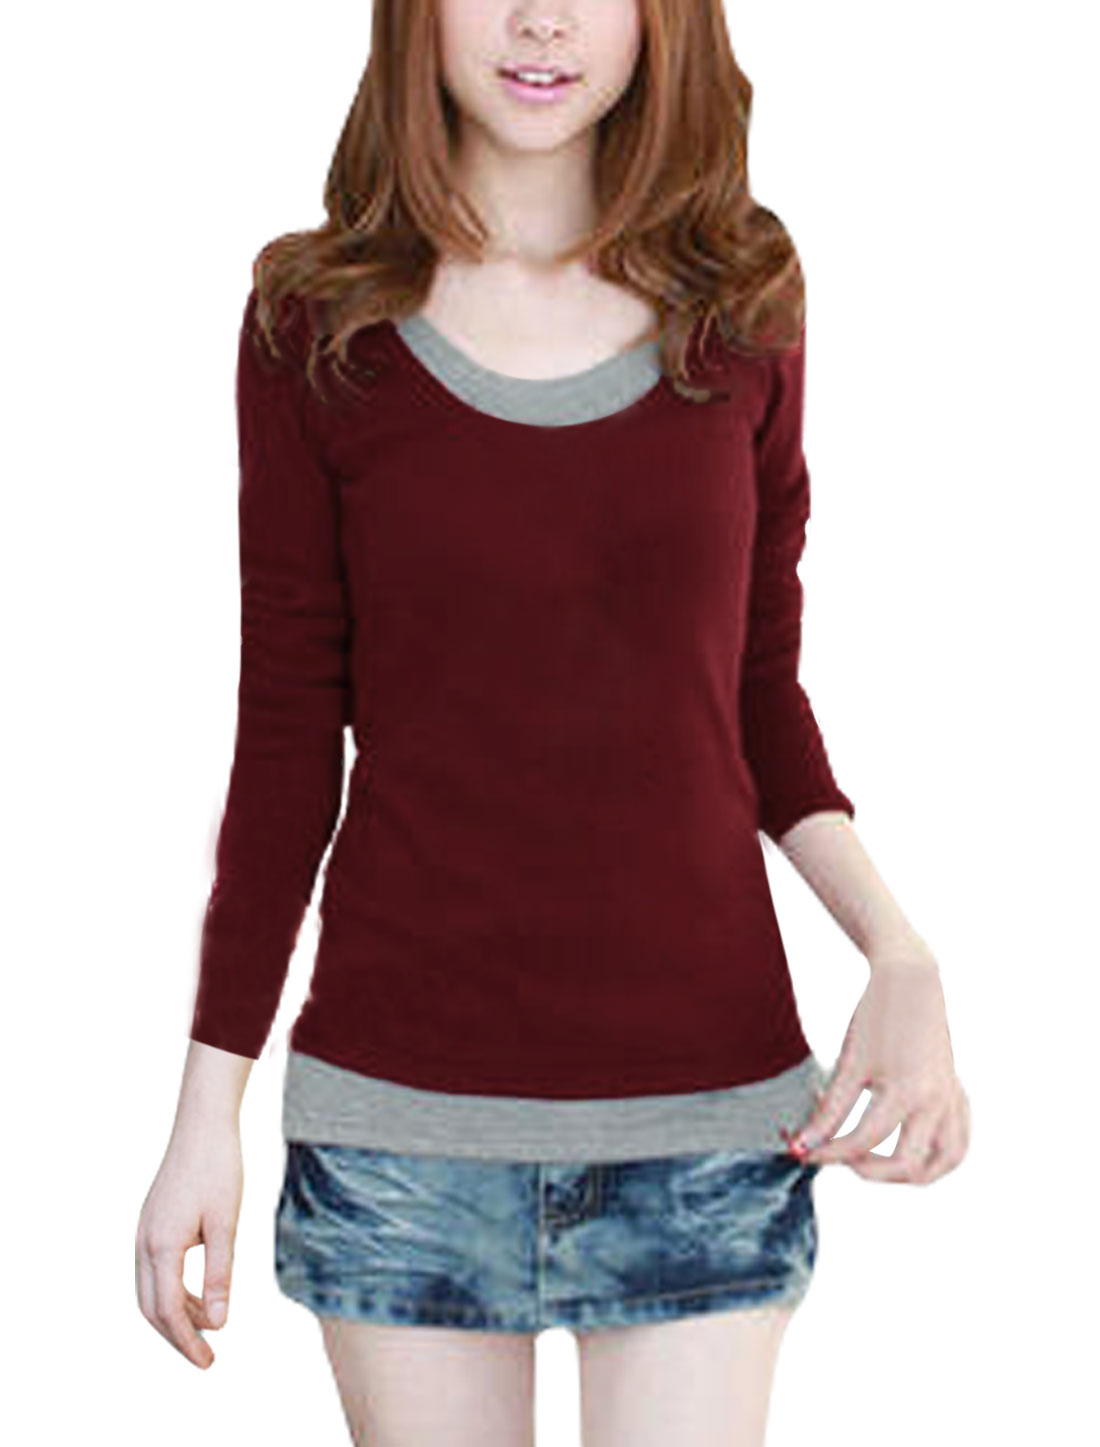 Ladies Claret Red Layered Tops Autumn Pullover Stretchy Tee Shirt XS